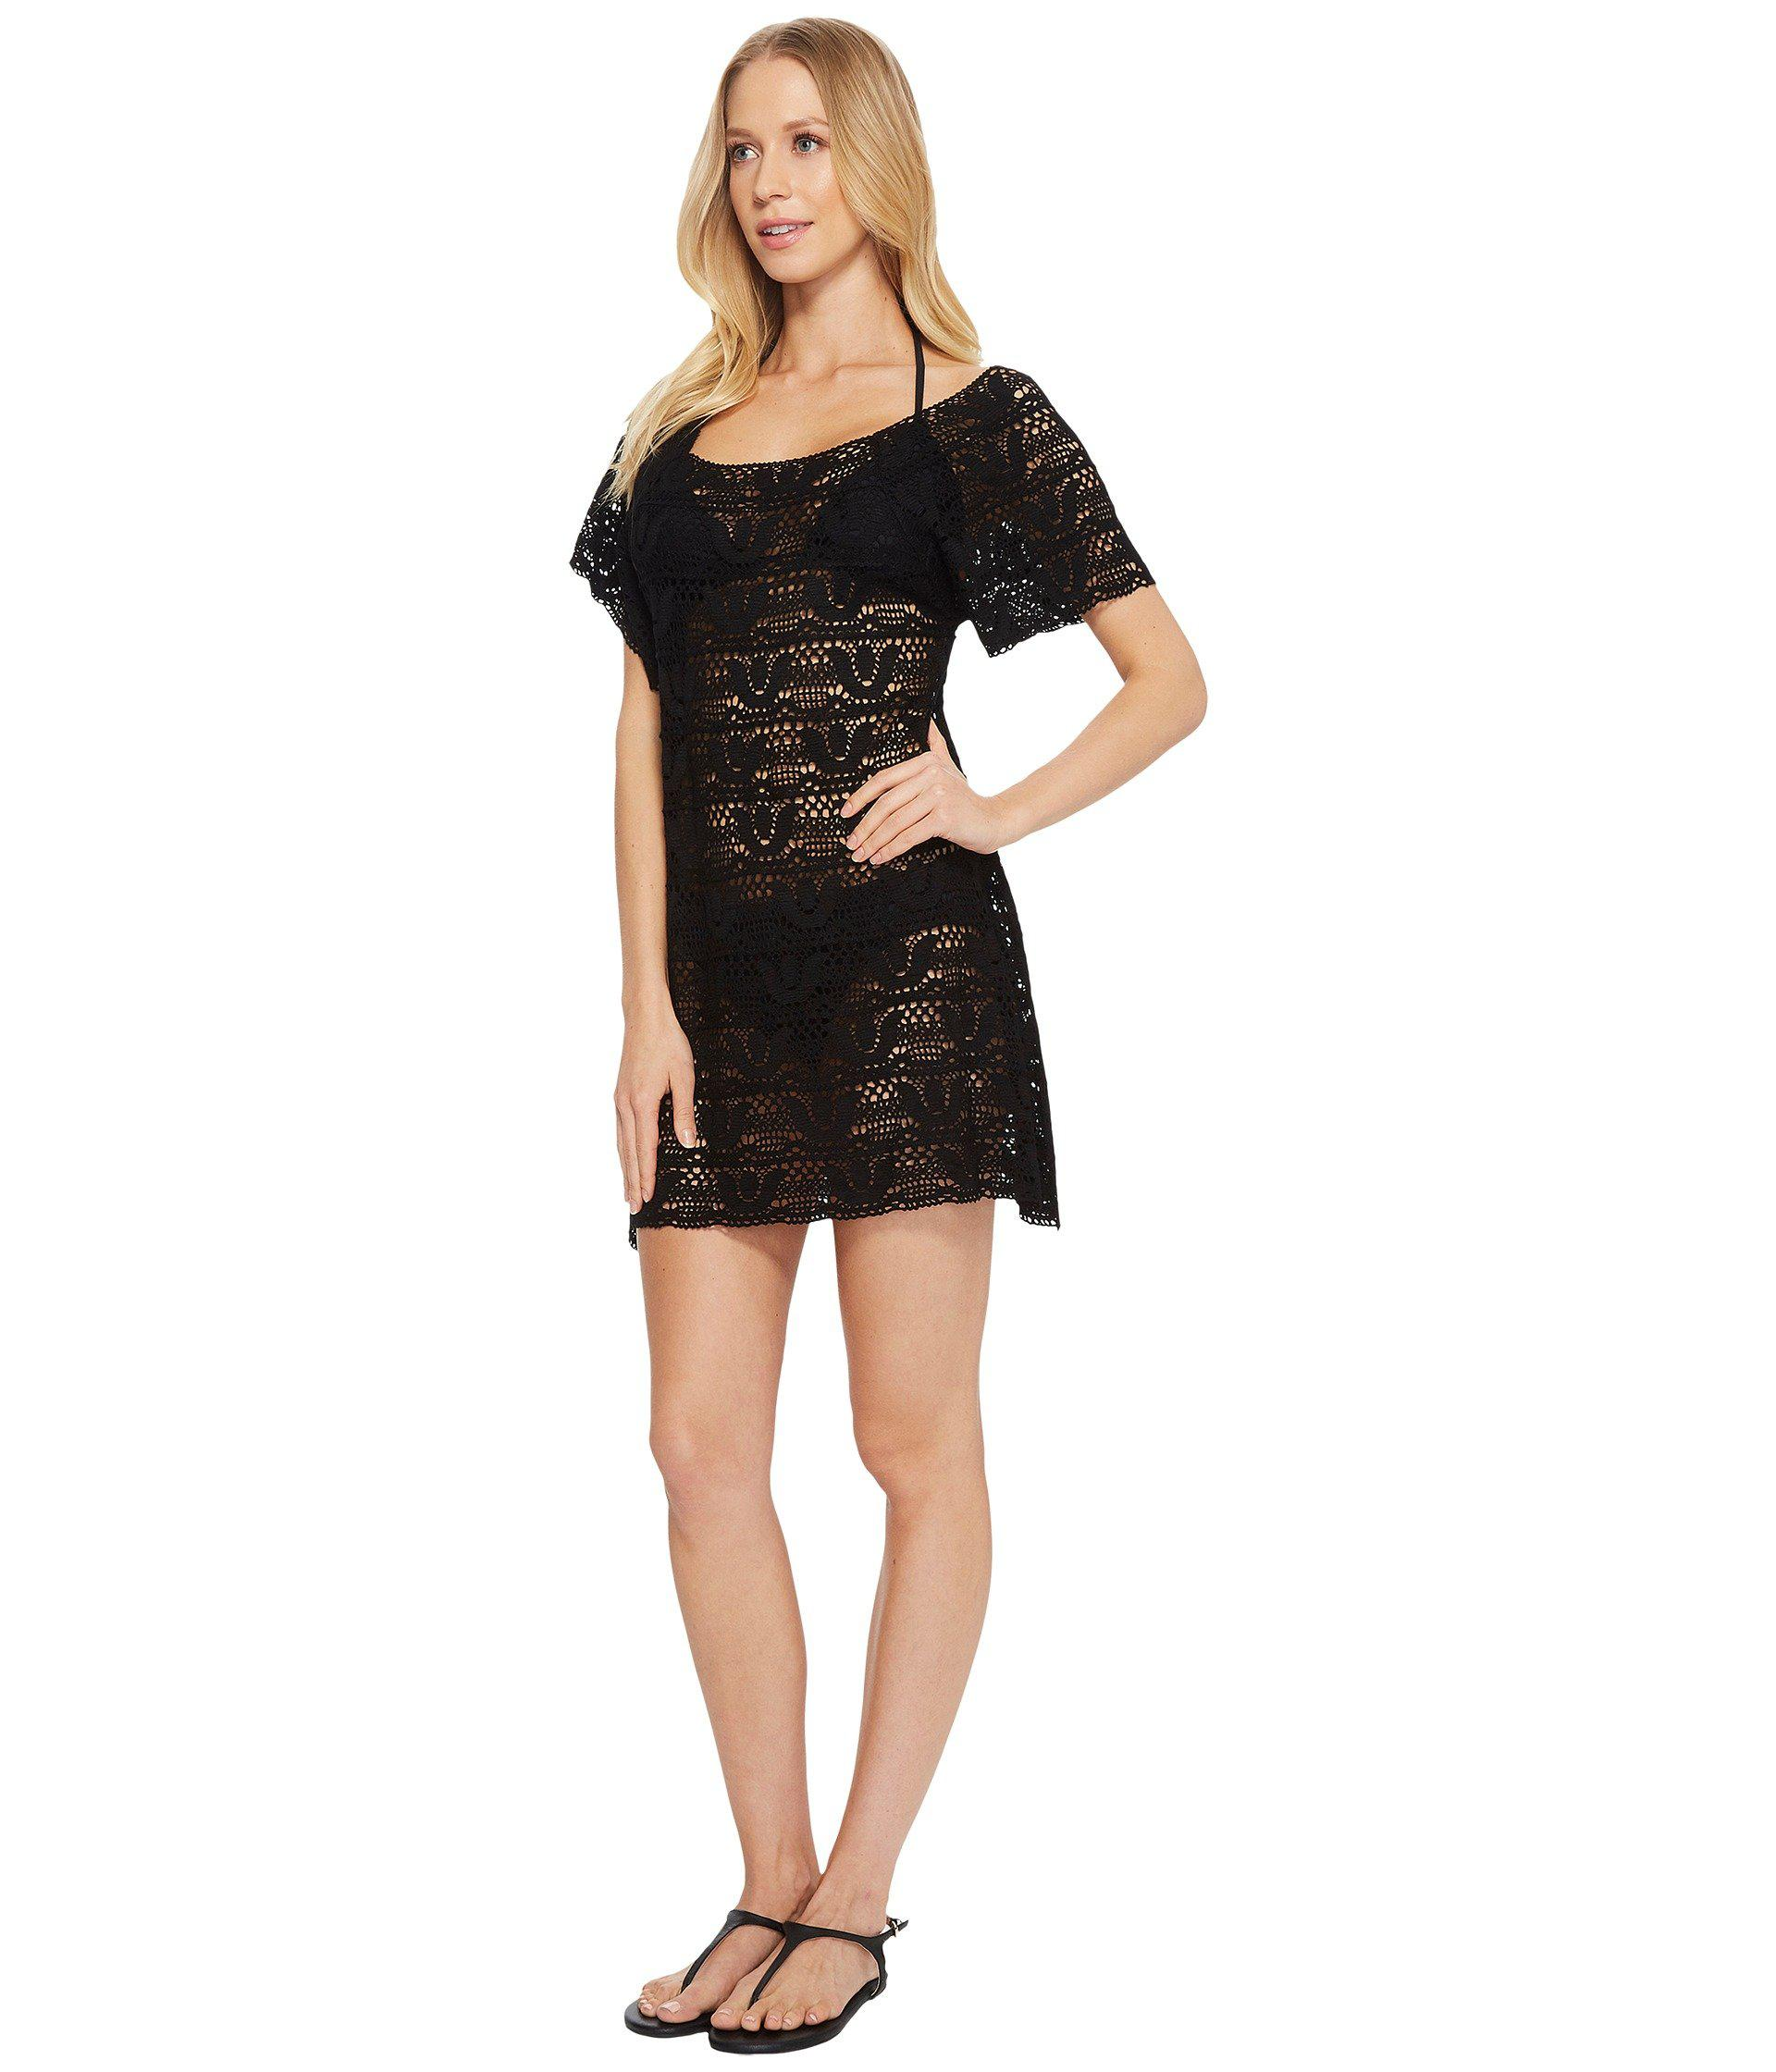 734aaa0c1ac Lyst - Nanette Lepore Crochet Short Dress Cover-up in Black - Save 16%